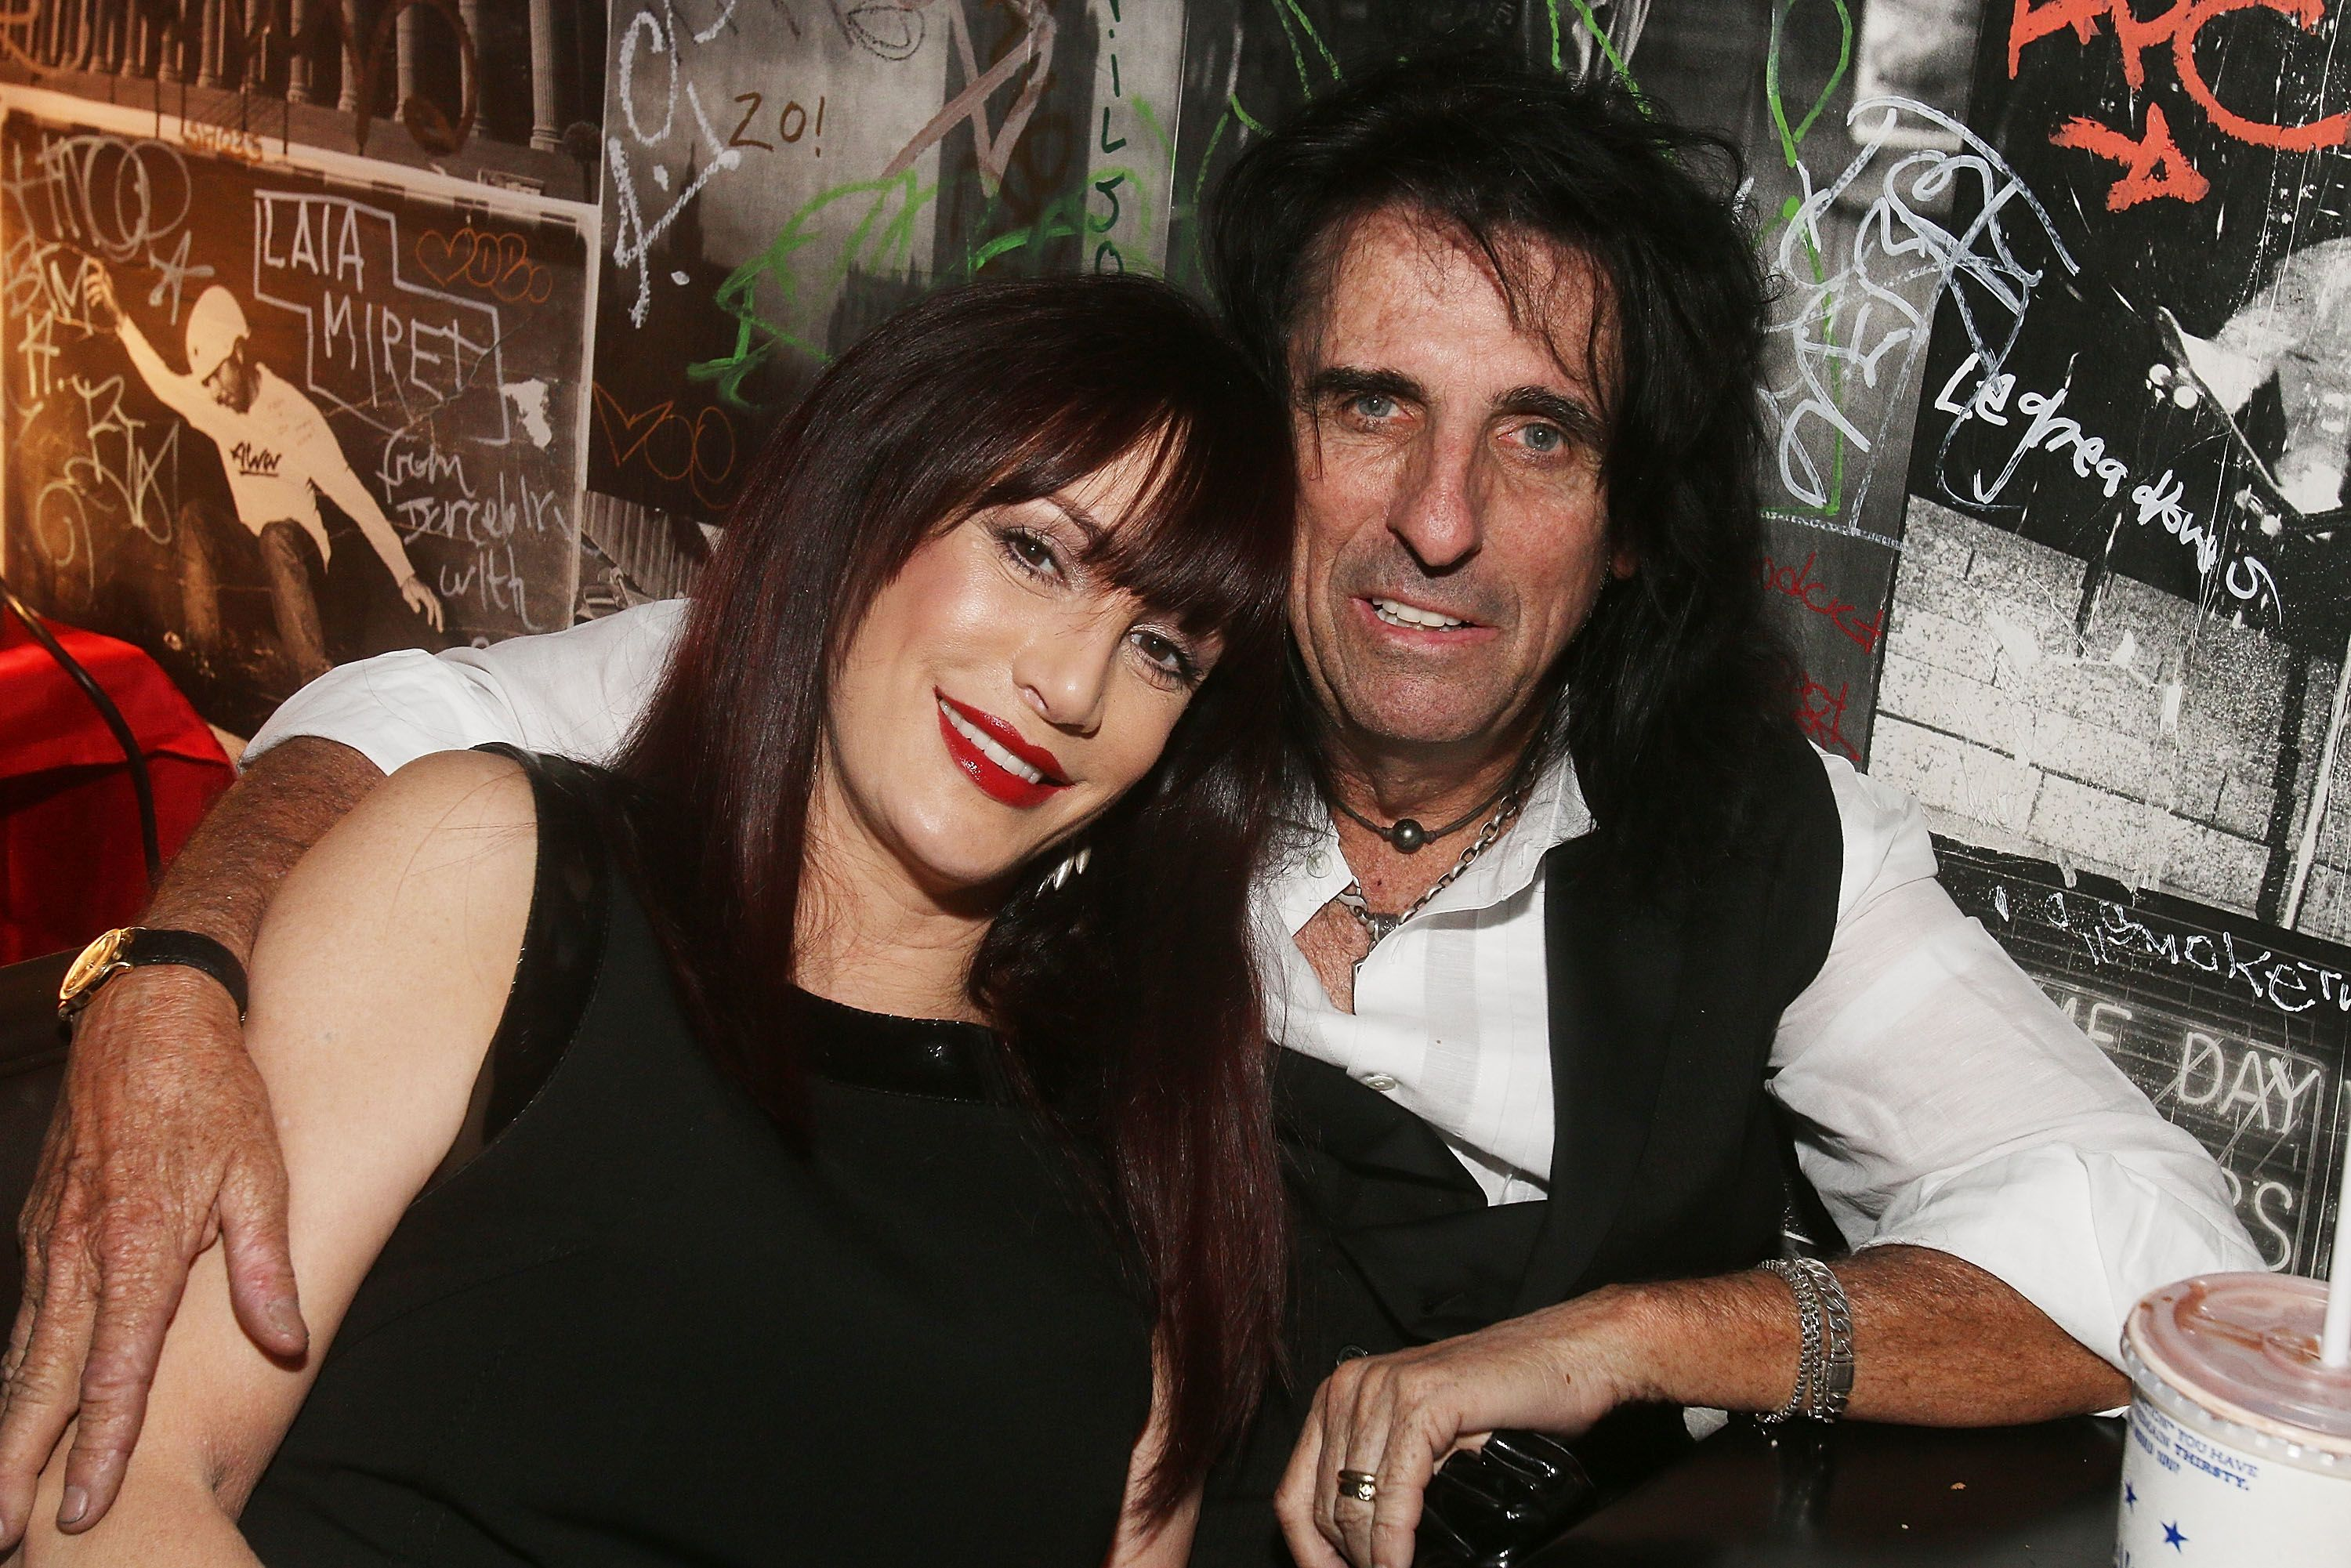 """Alice Cooper and wife Sheryl Cooper at the after party for the premiere of """"Super Duper Alice Cooper"""" during the 2014 Tribeca Film Festival in New York City   Source: Getty Images"""